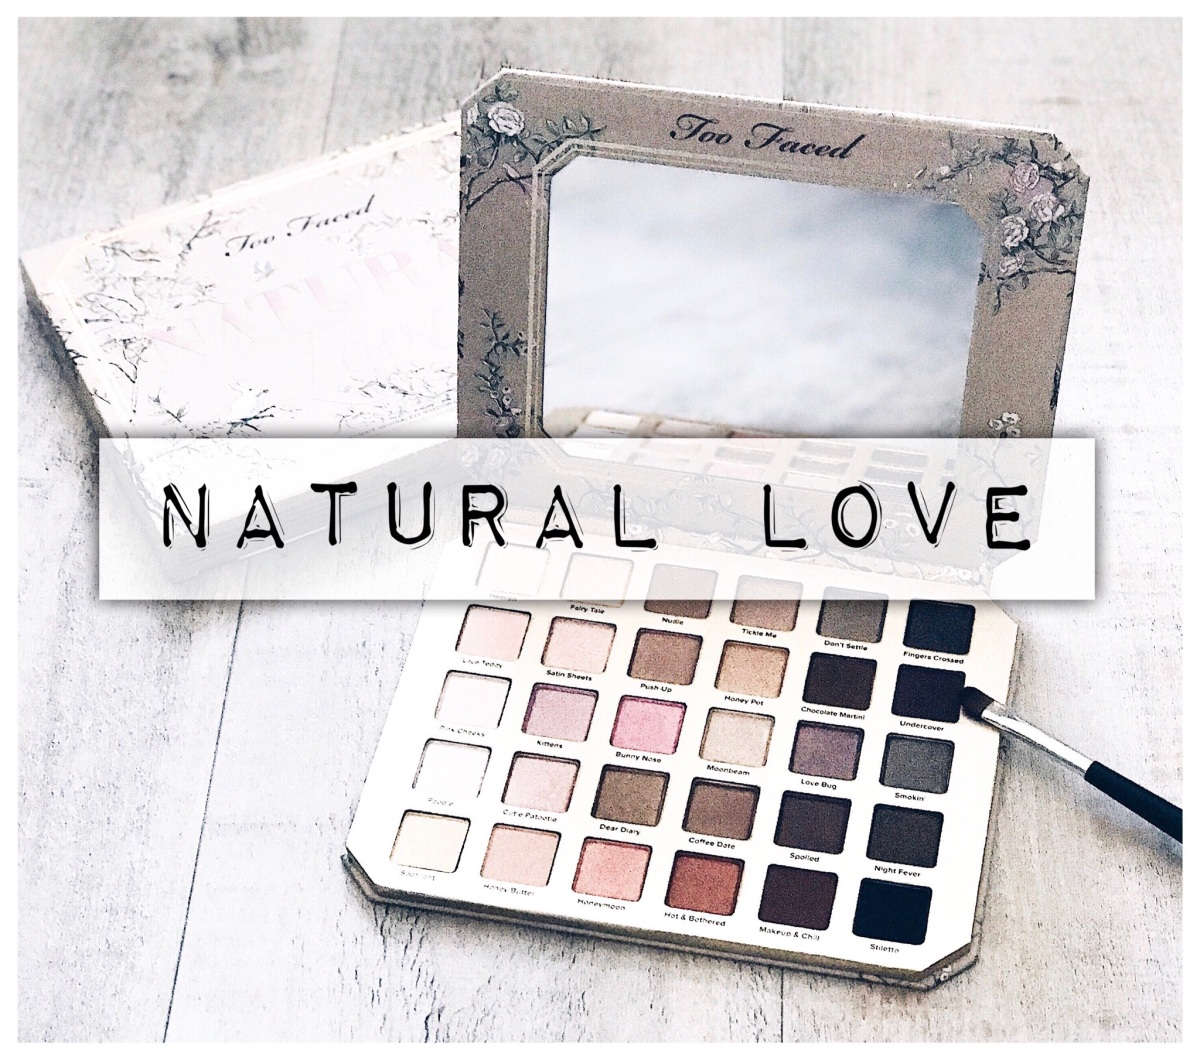 [Make up] Mon avis sur la Natural love de chez Too Faced & petit tuto facile au quotidien